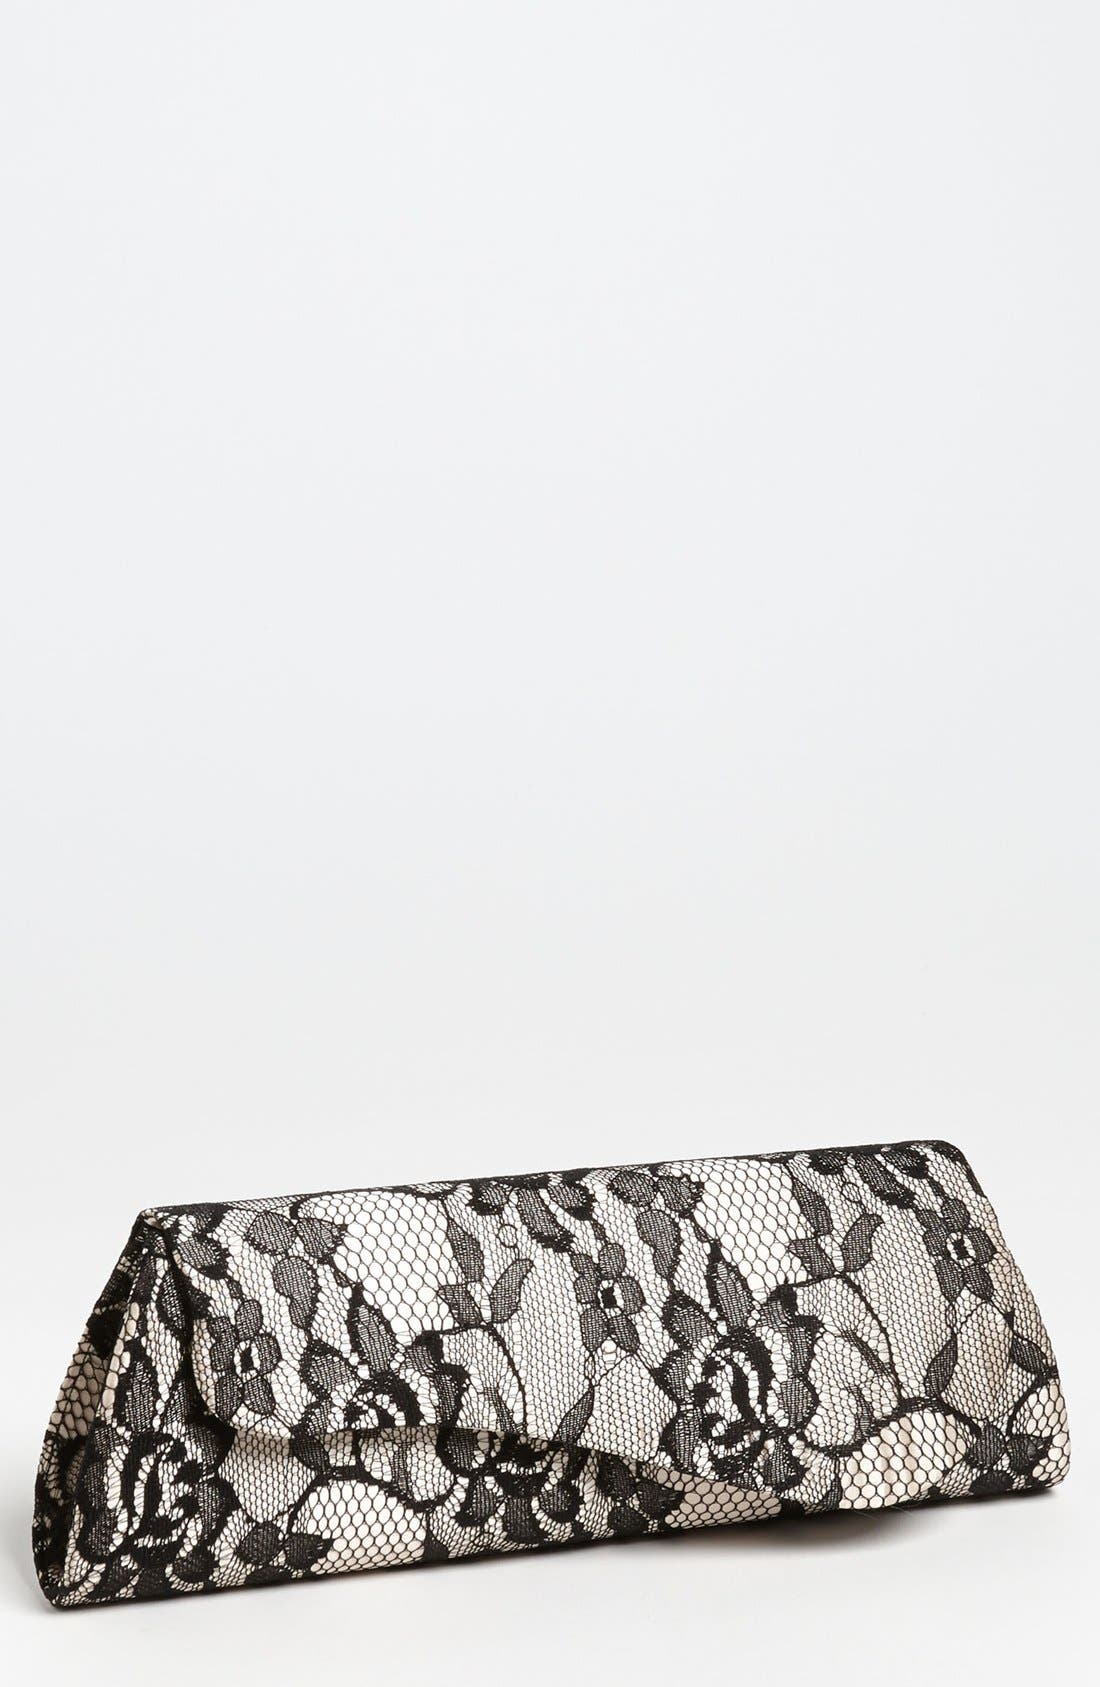 Alternate Image 1 Selected - Jessica McClintock Lace Envelope Clutch